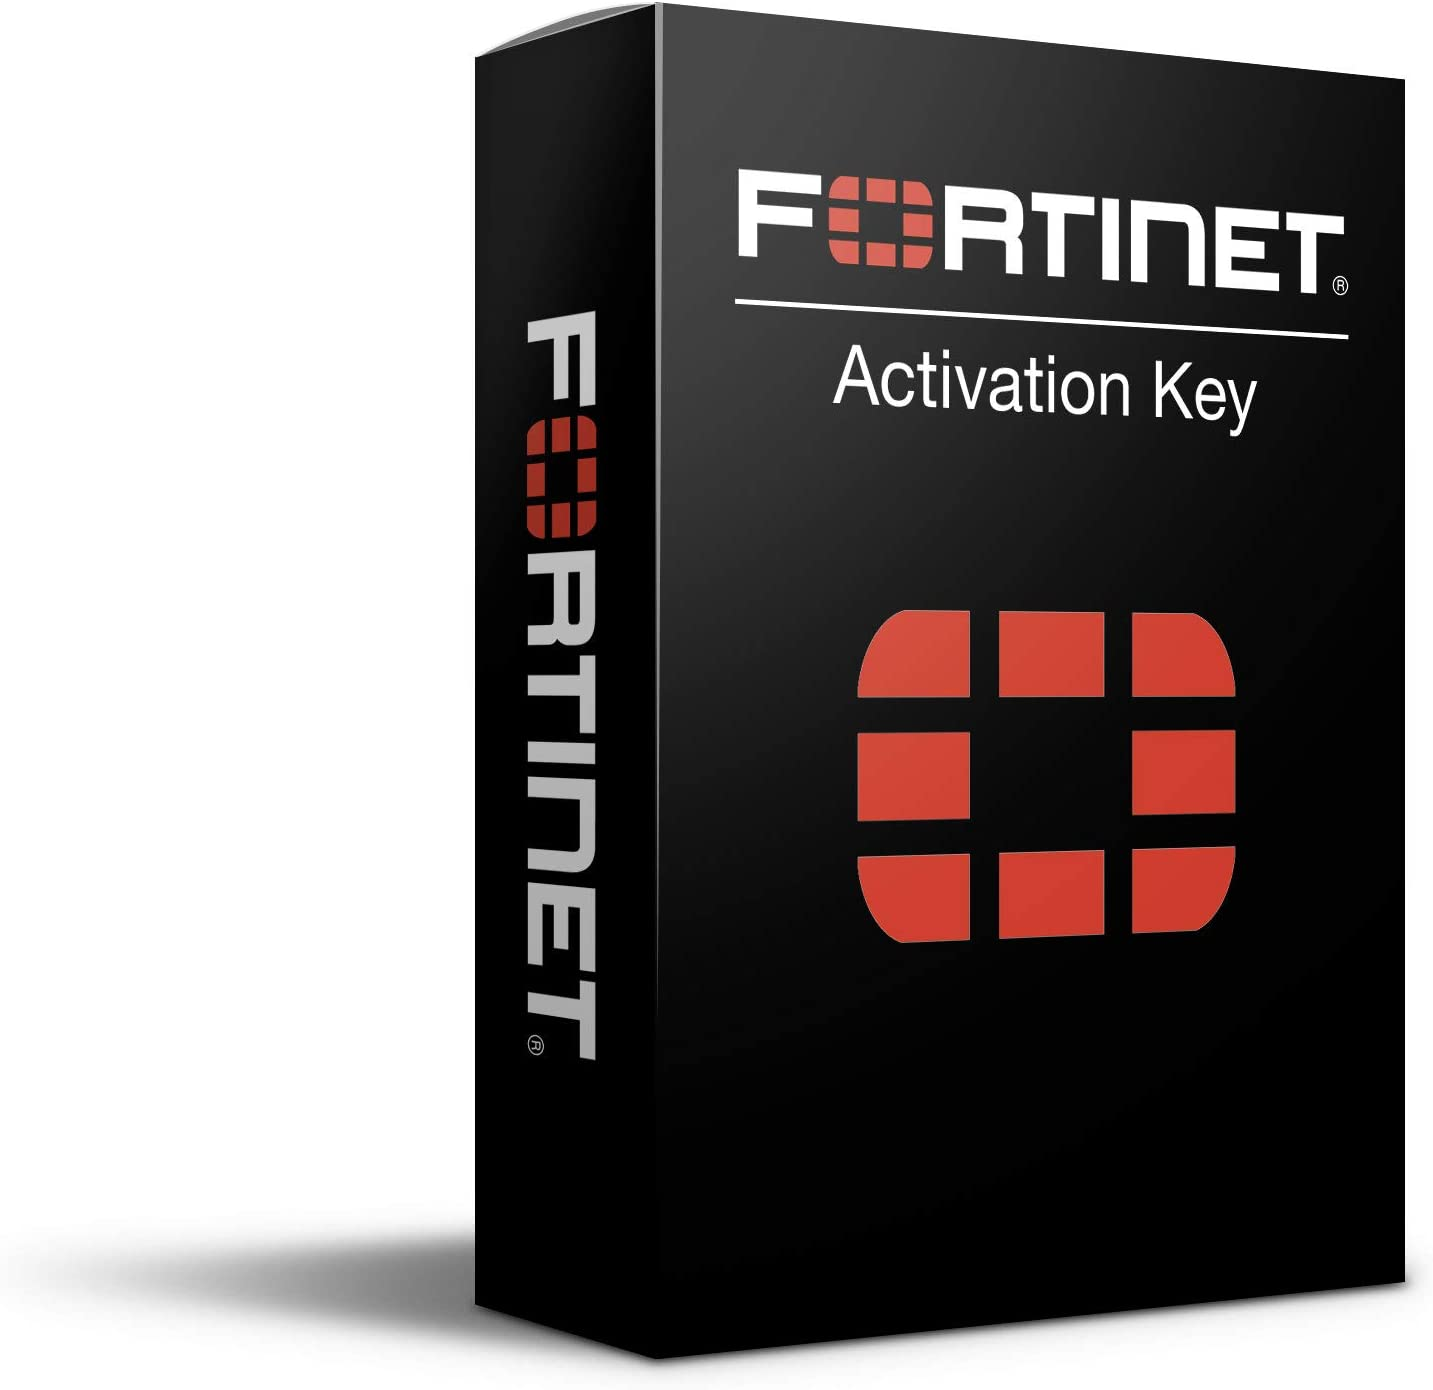 Fortinet FortiGate-30E-3G4G-NAM License 1 YR 24X7 FortiCare and ATP FC-10-G30EN-928-02-12